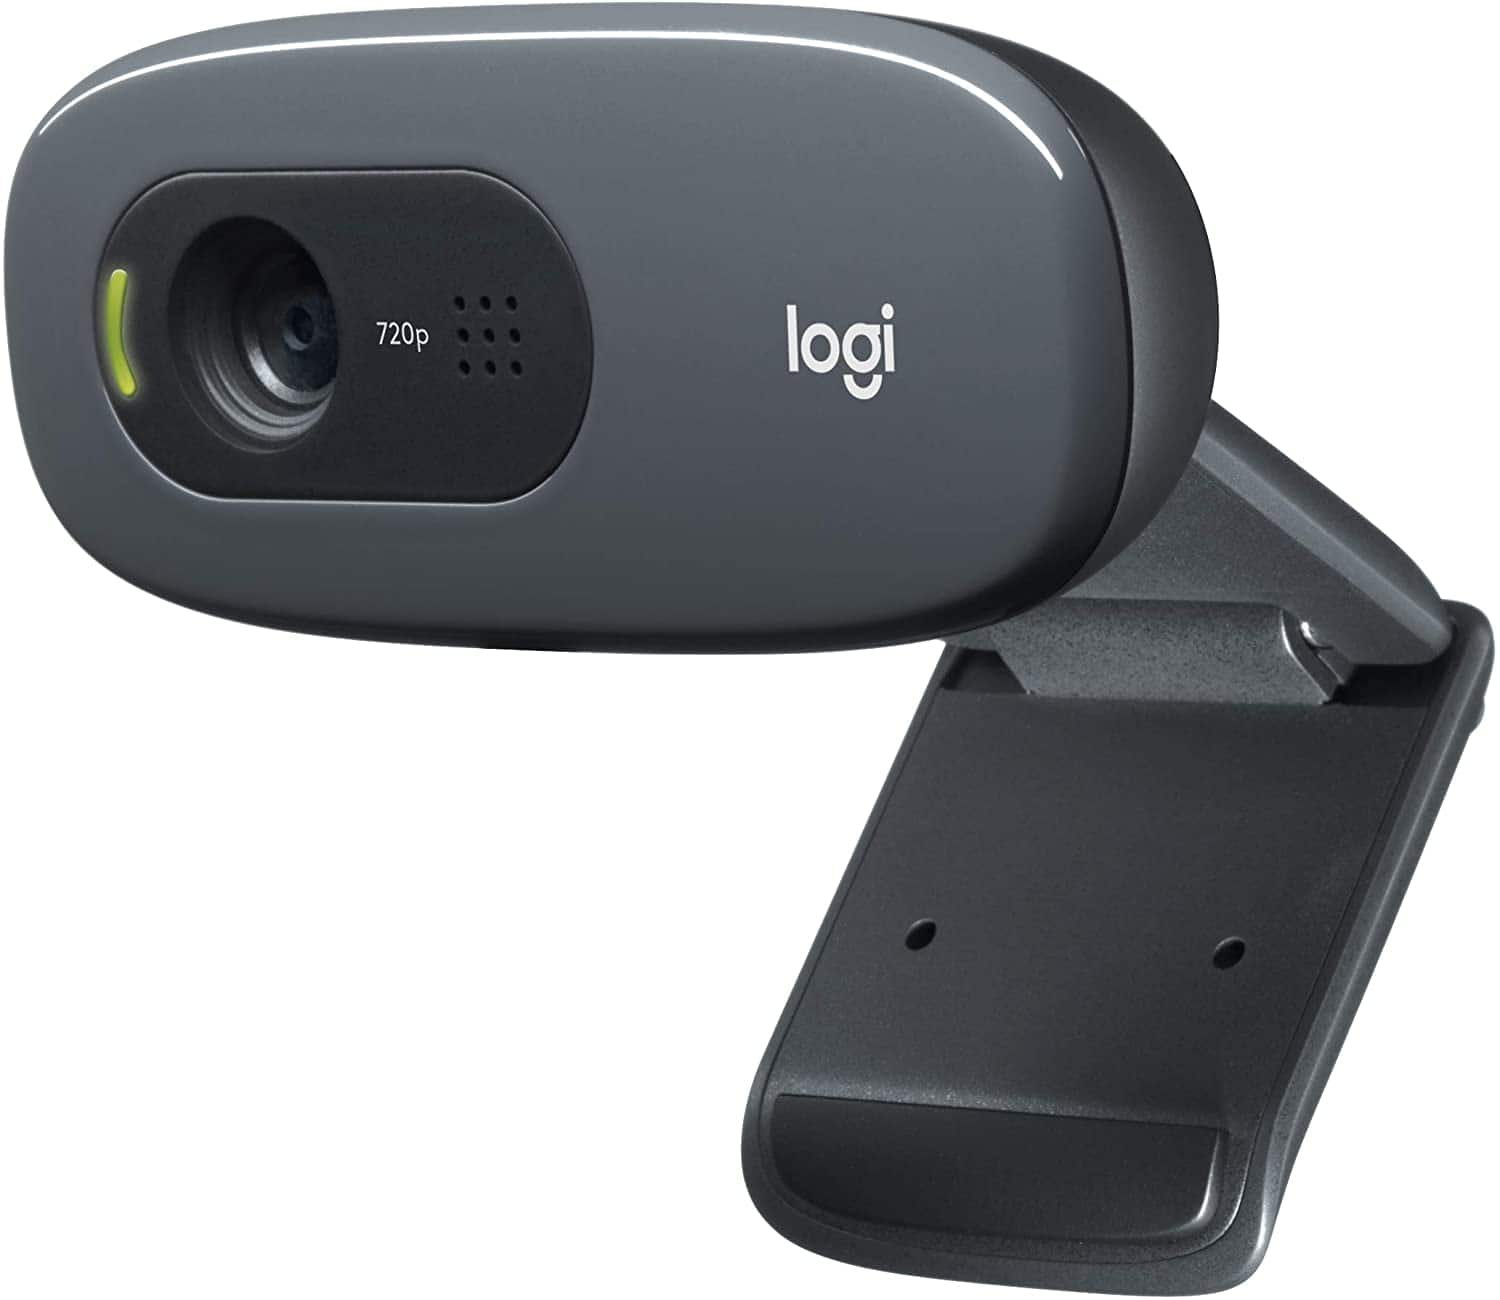 Logitech C270 Desktop or Laptop Webcam, HD 720p Widescreen for Video Calling and Recording - $27.99